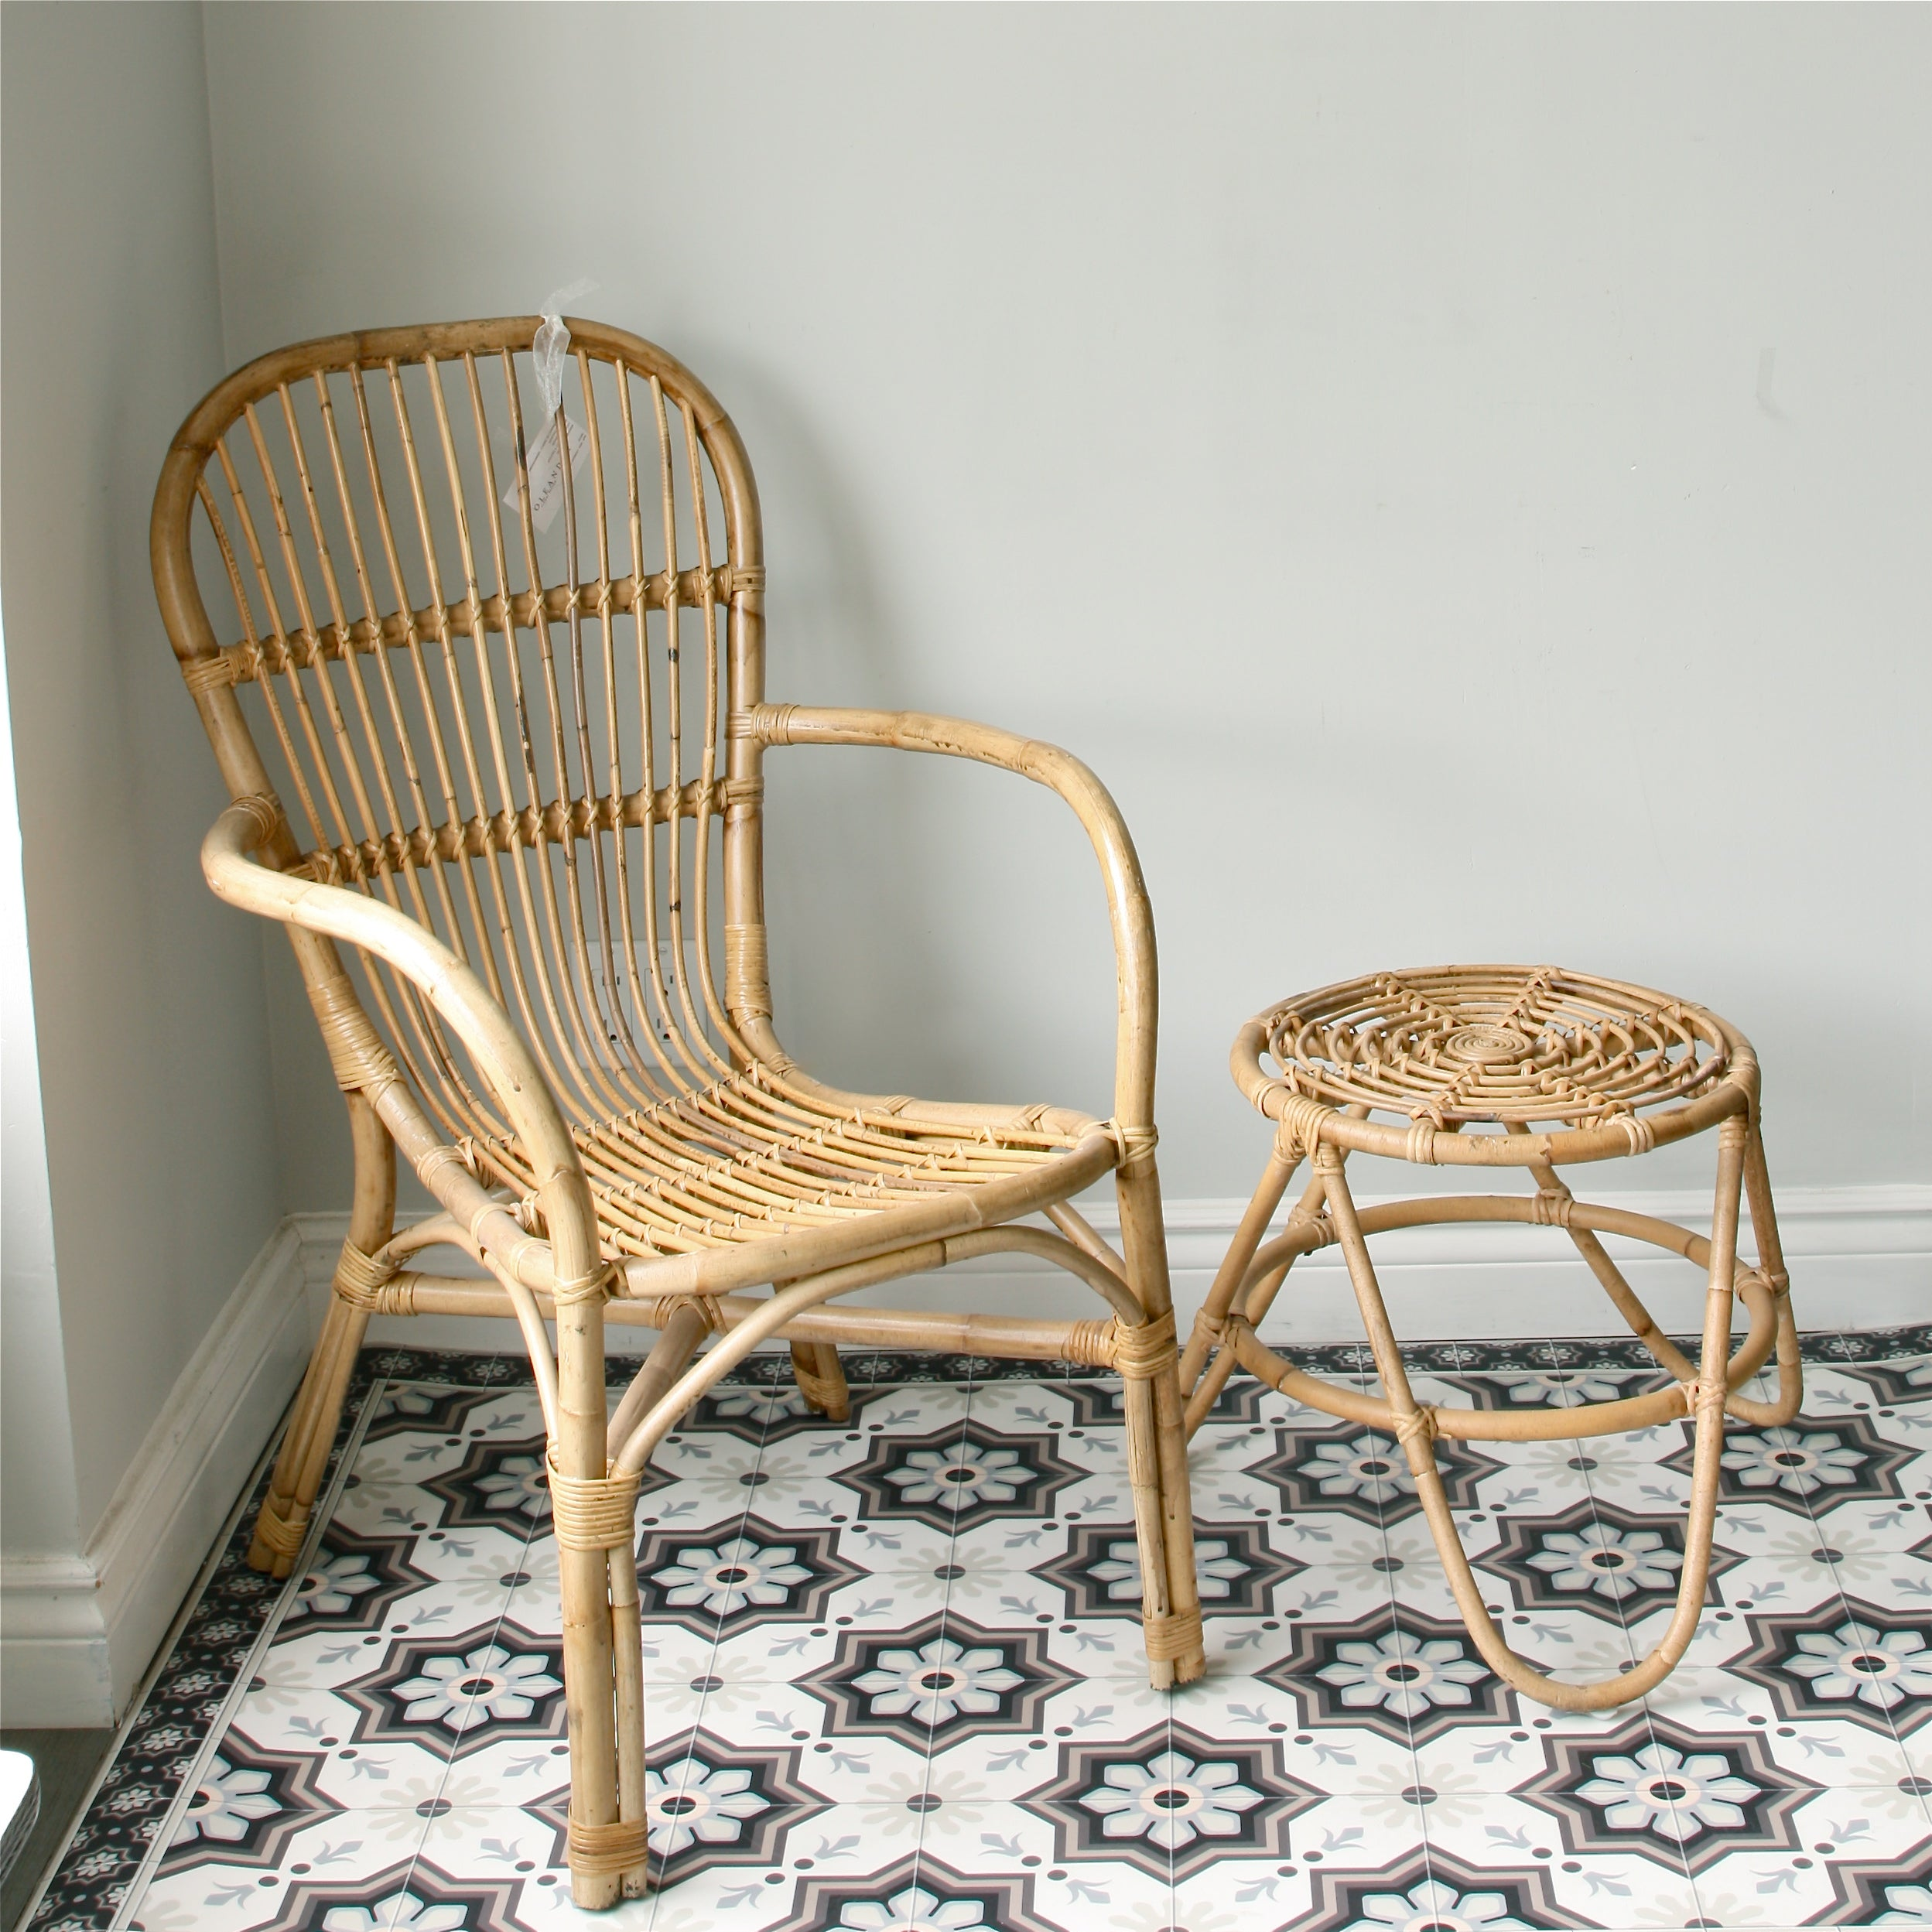 Bamboo and Wicker Patio Furniture